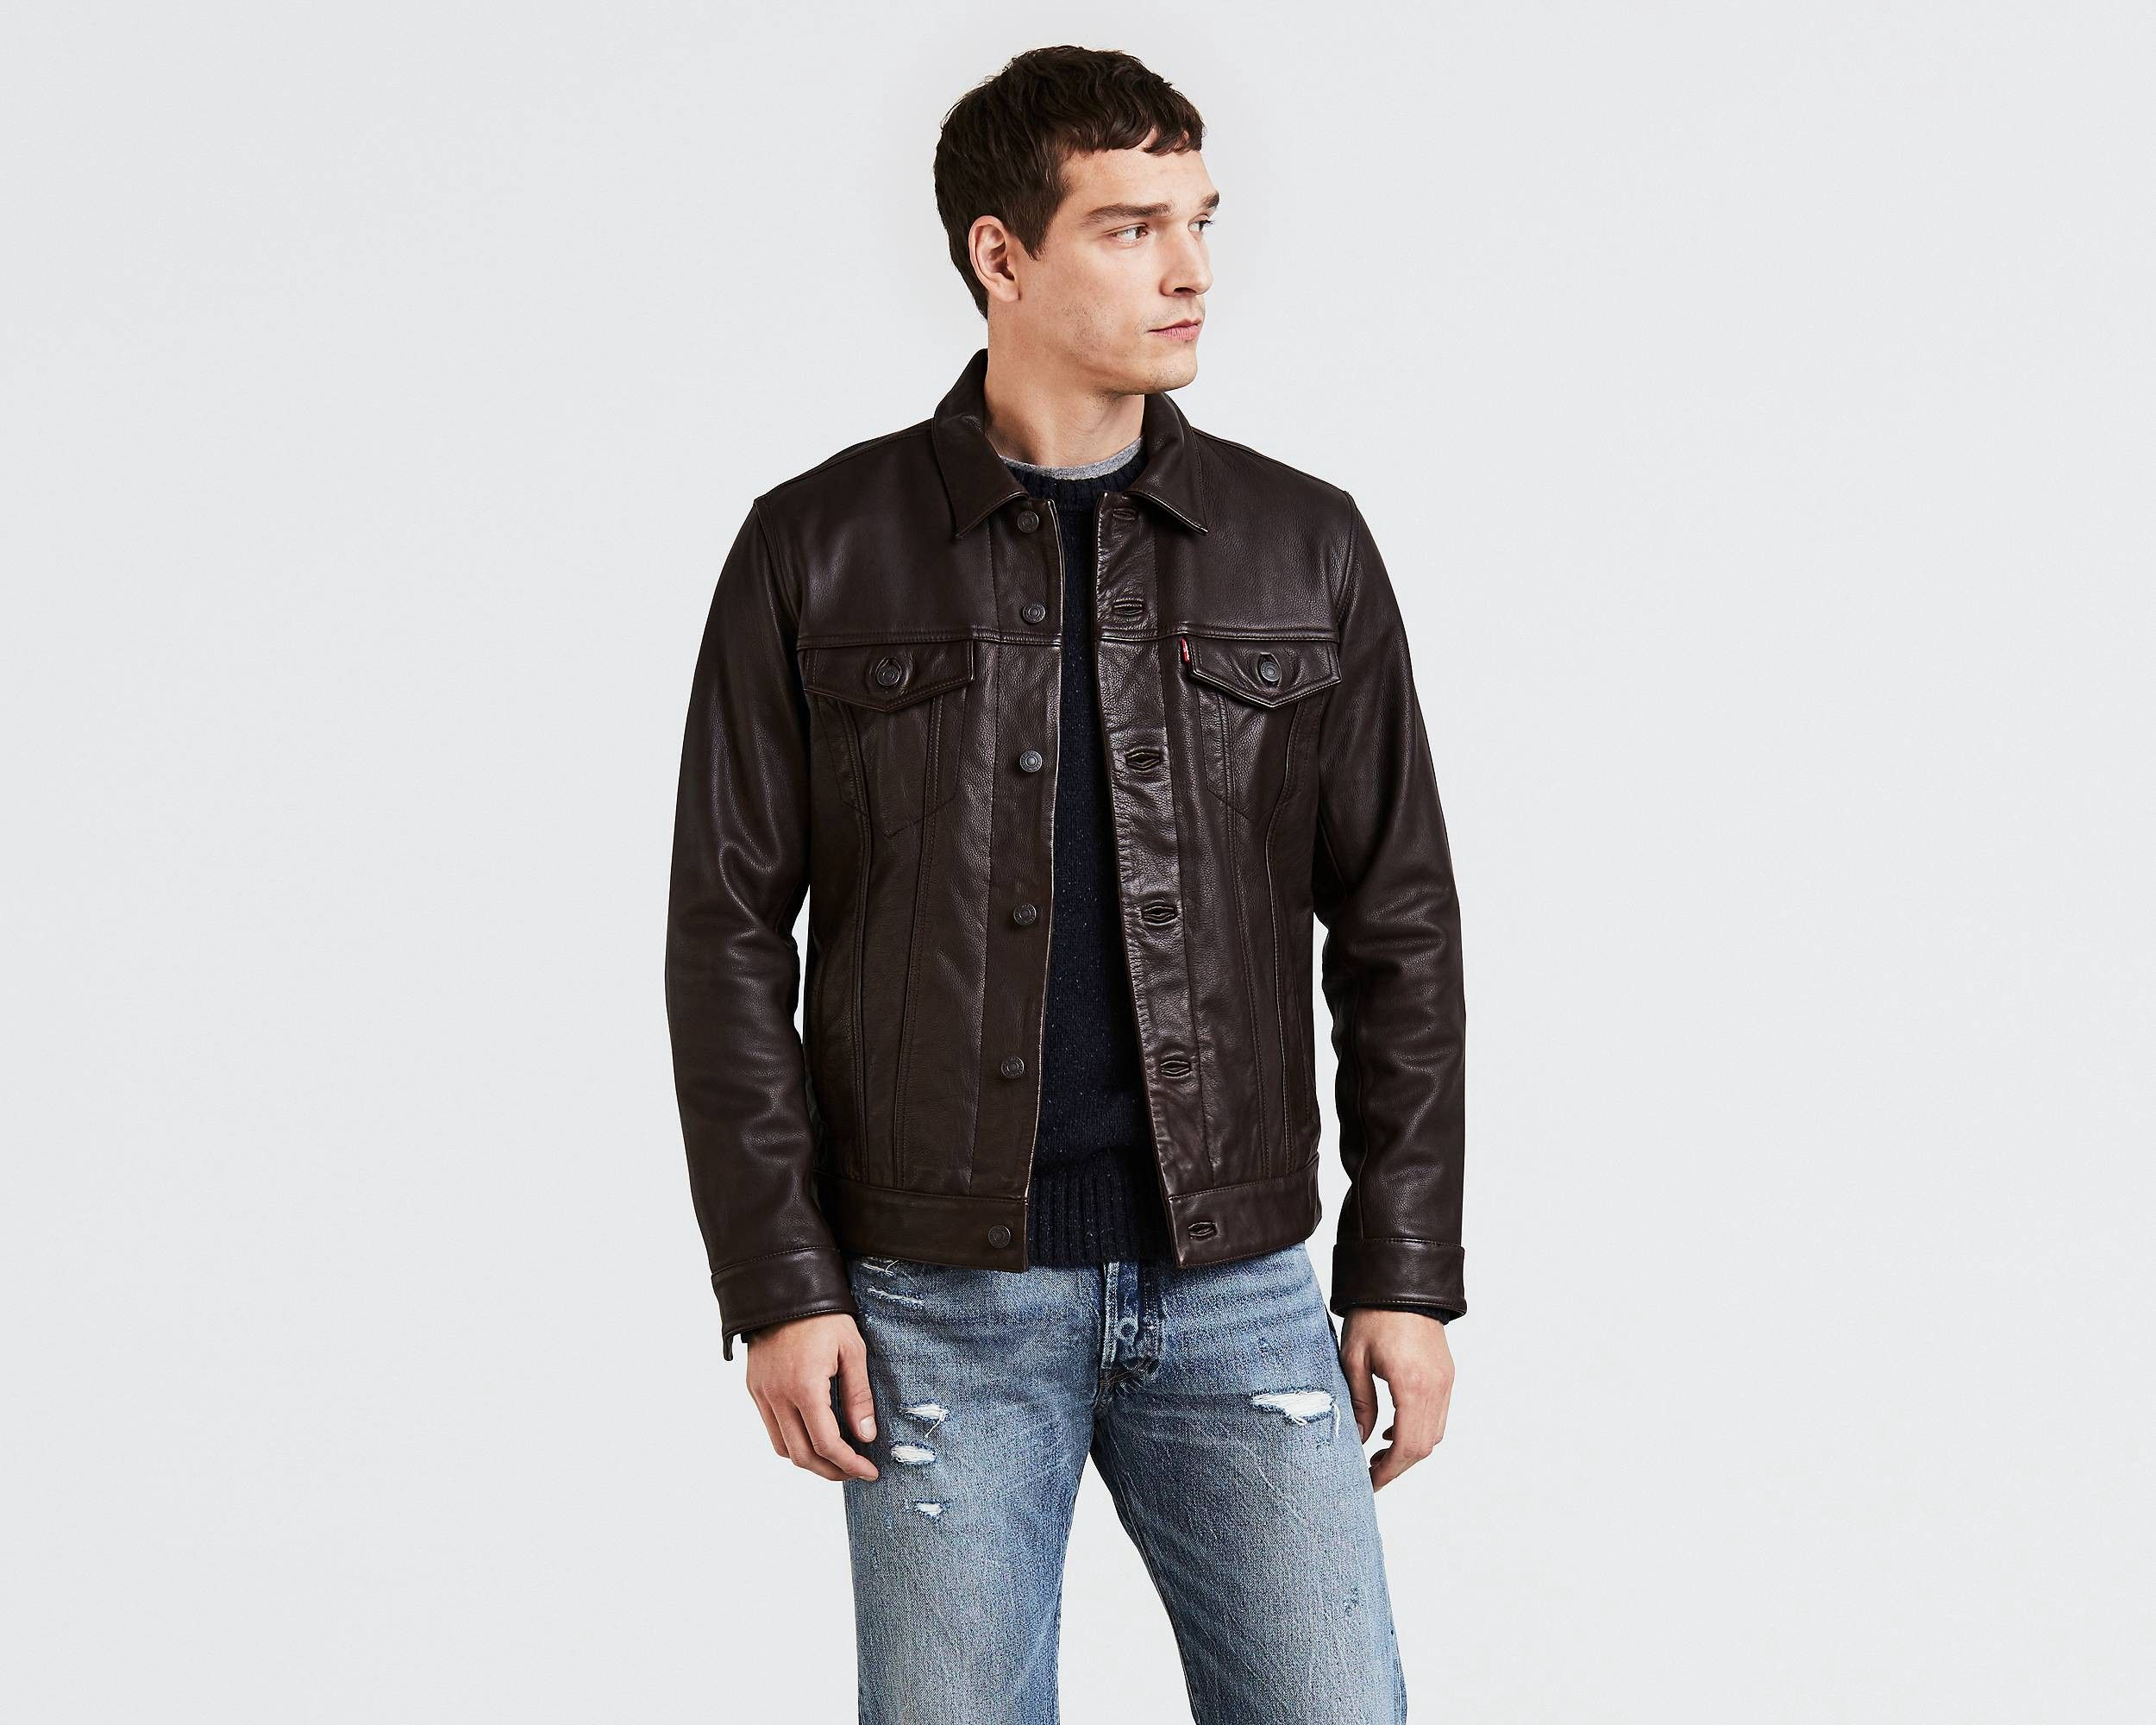 Levi's Leather Trucker Jacket Brown S Jackets, Clothes